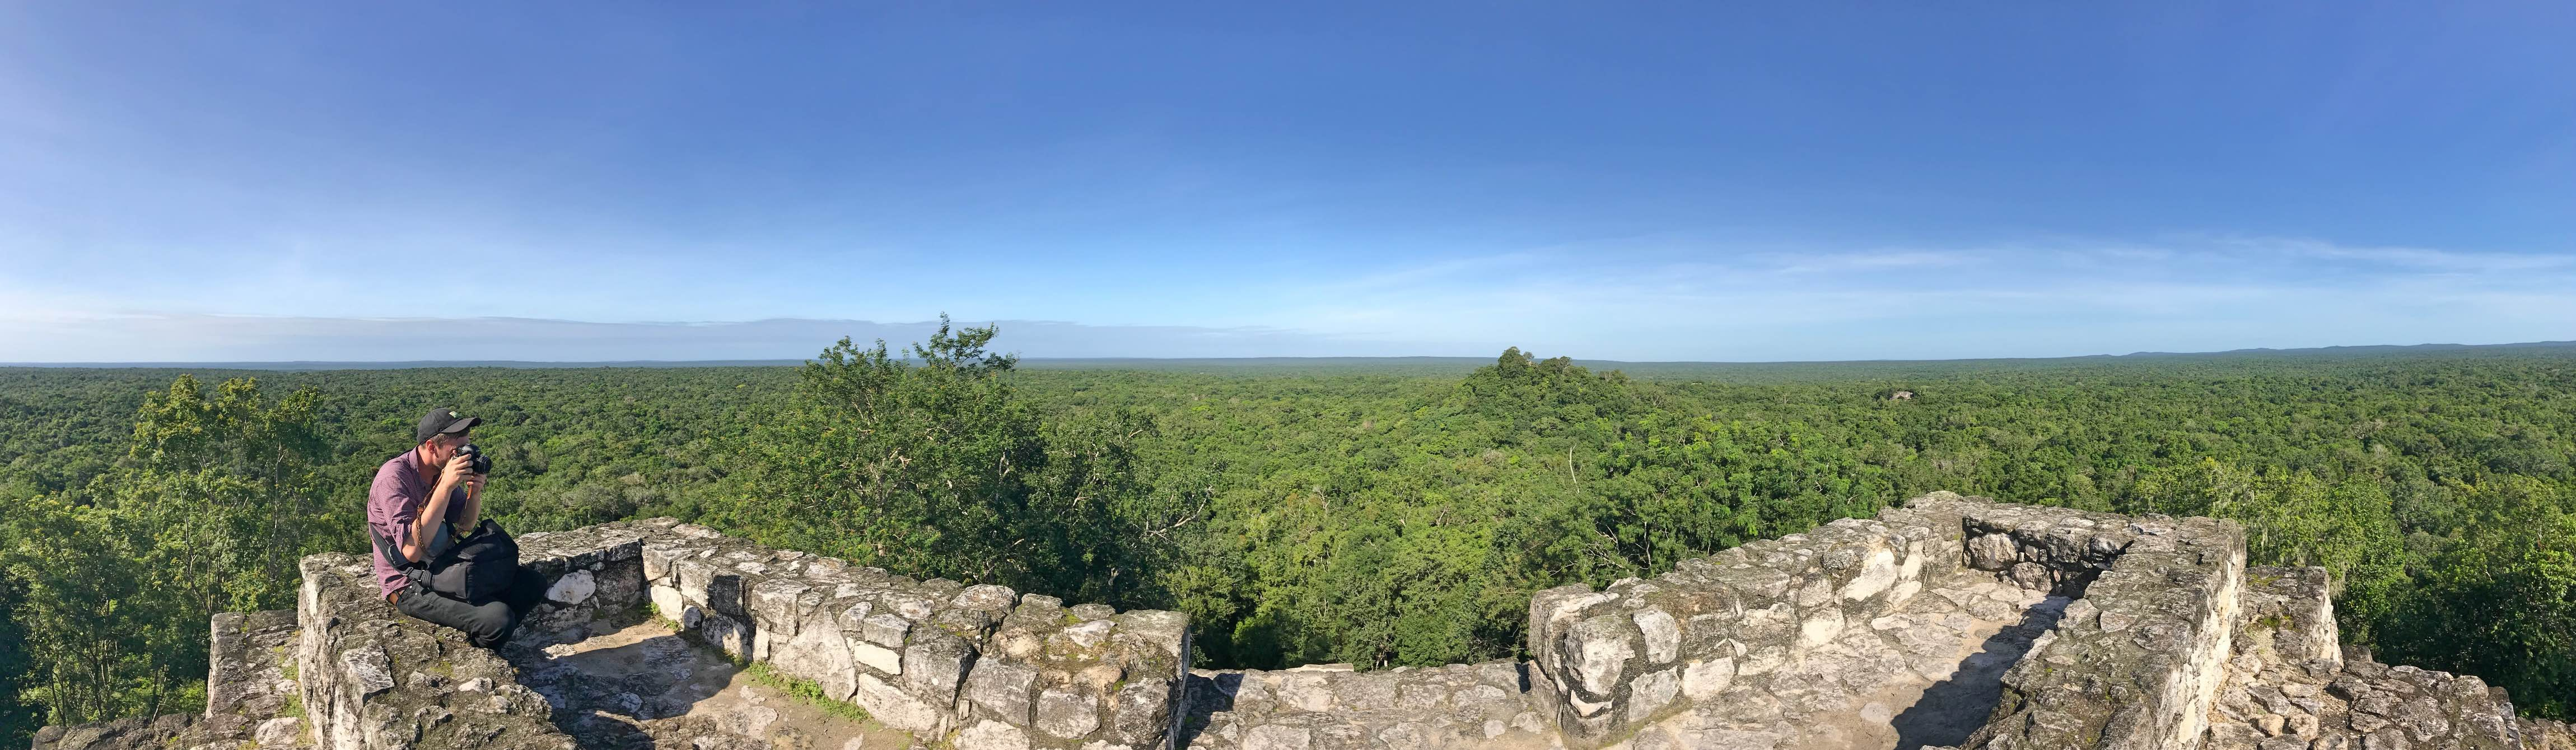 Jungle panoramic at Calakmul